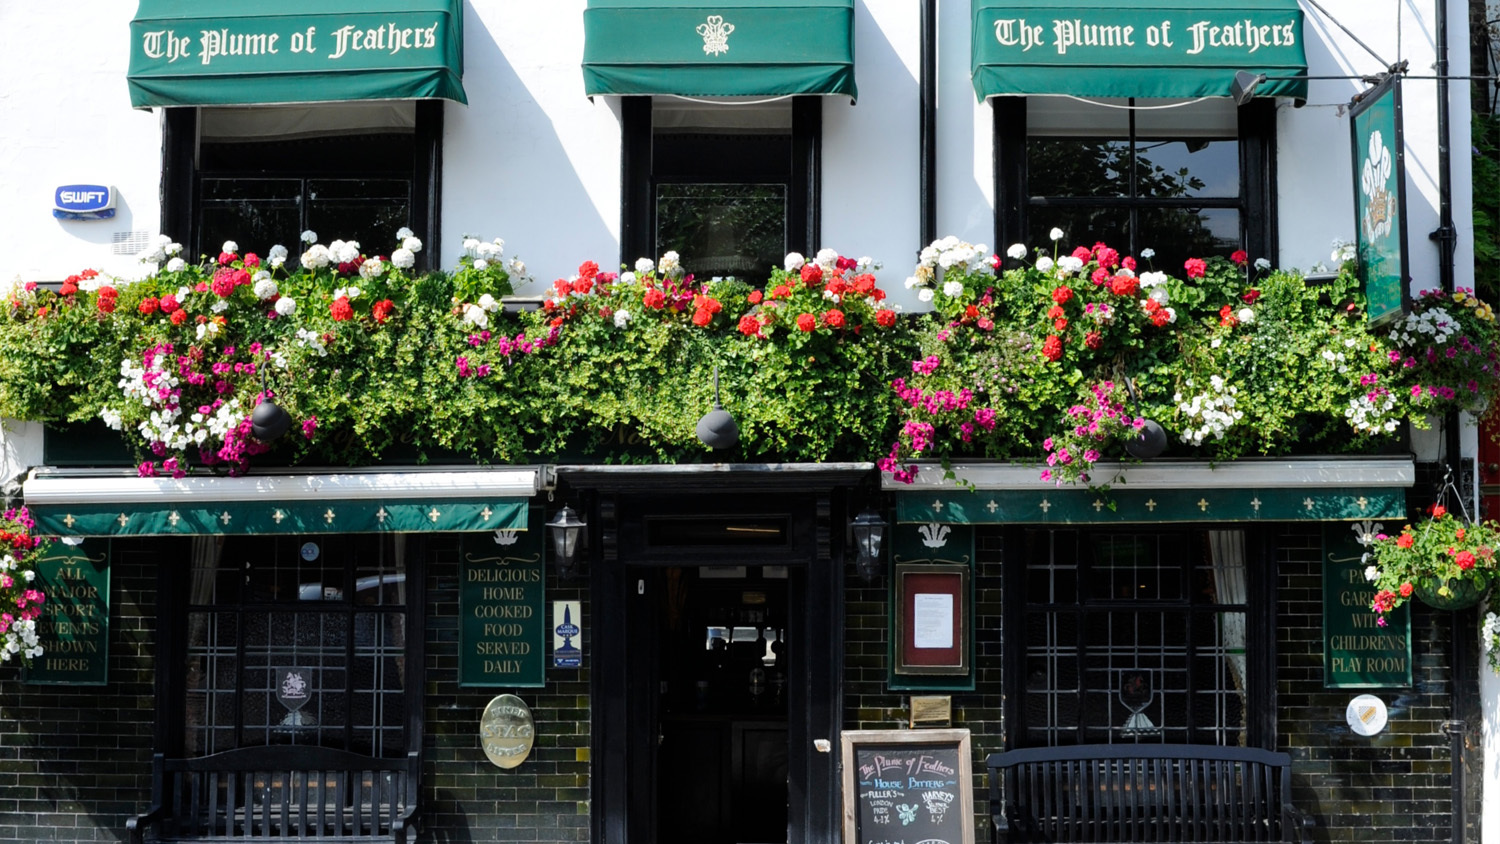 Plume of Feathers pub, Greenwich